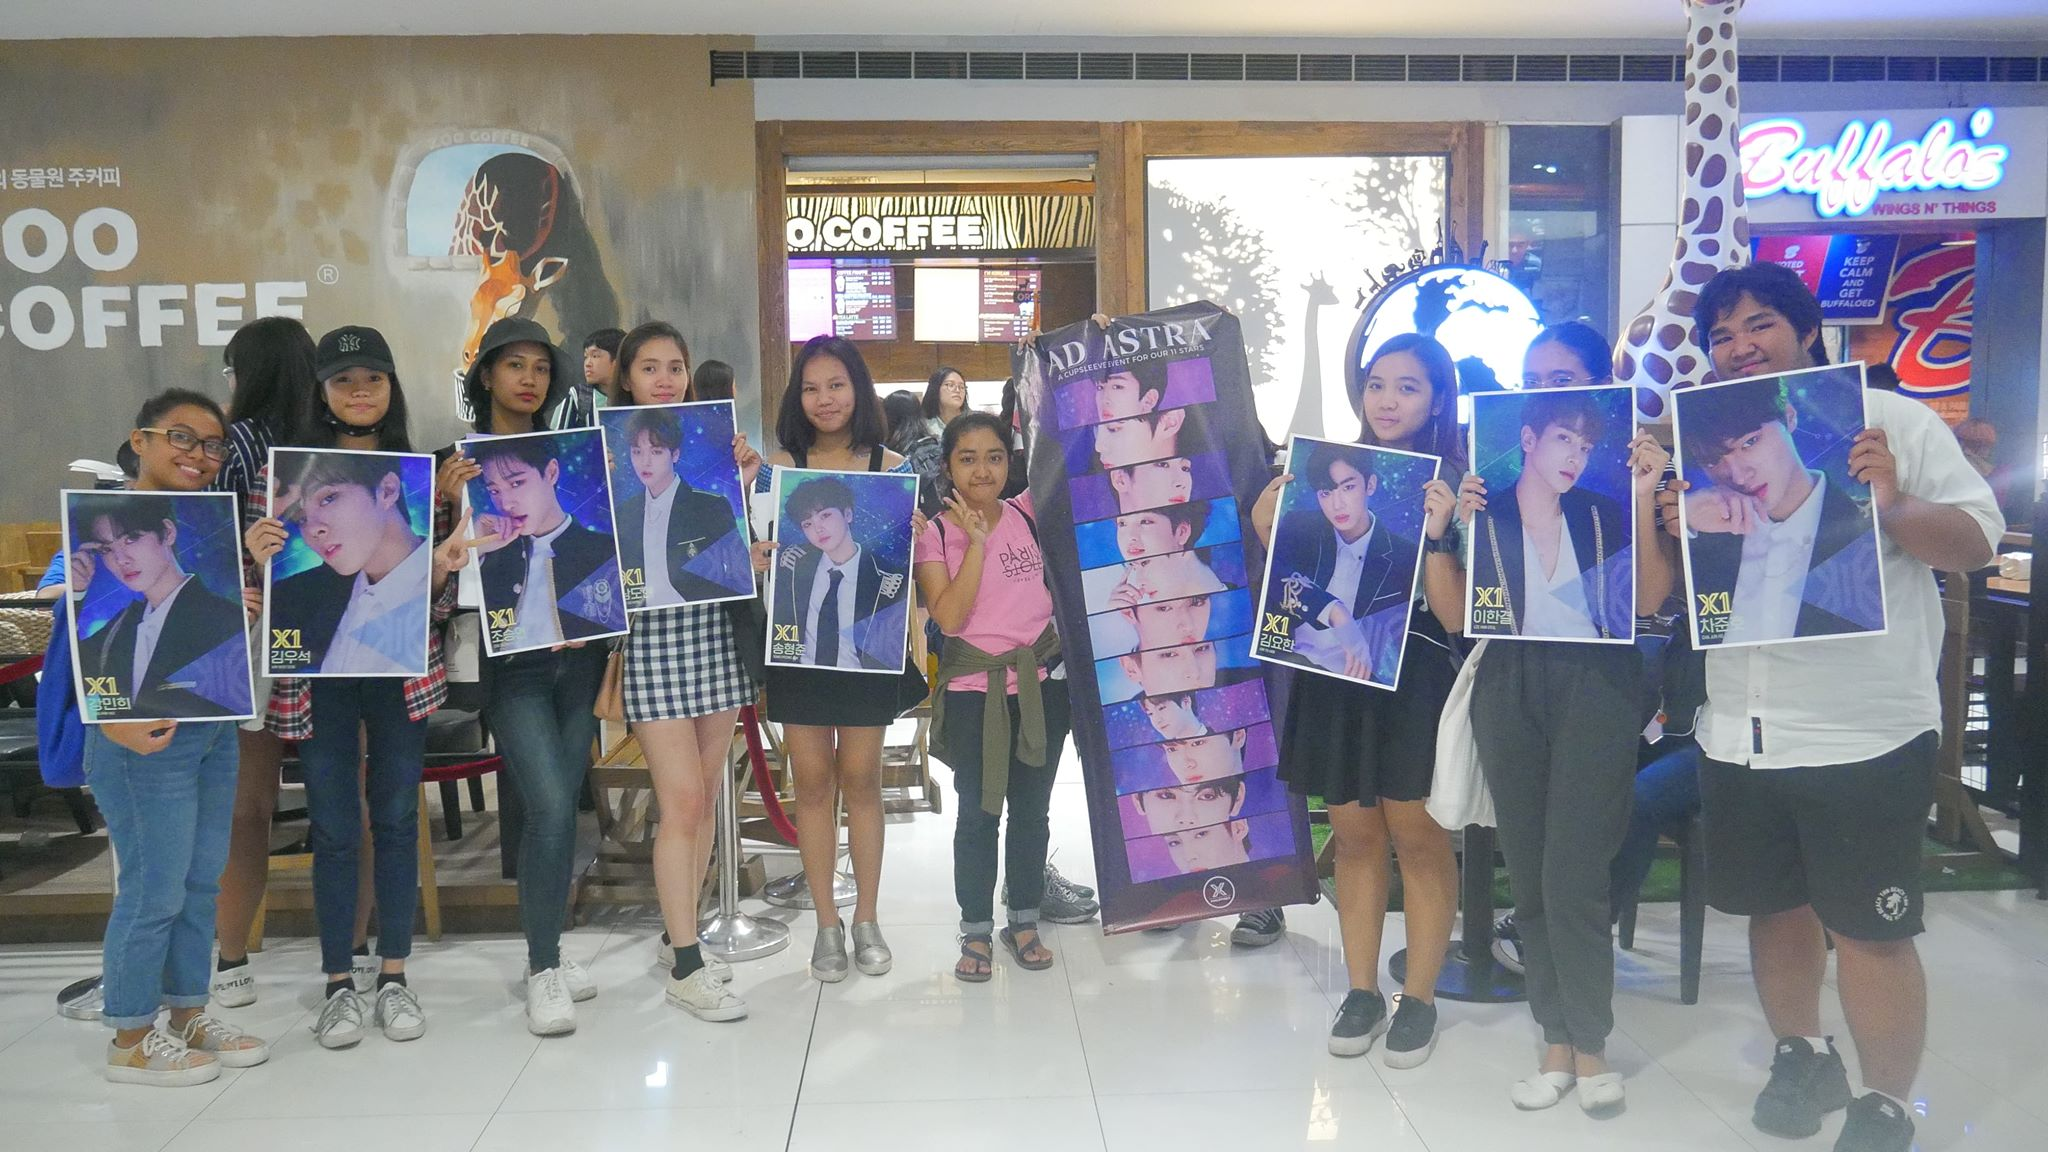 X1 Philippines Collected Stars Chingu To The World